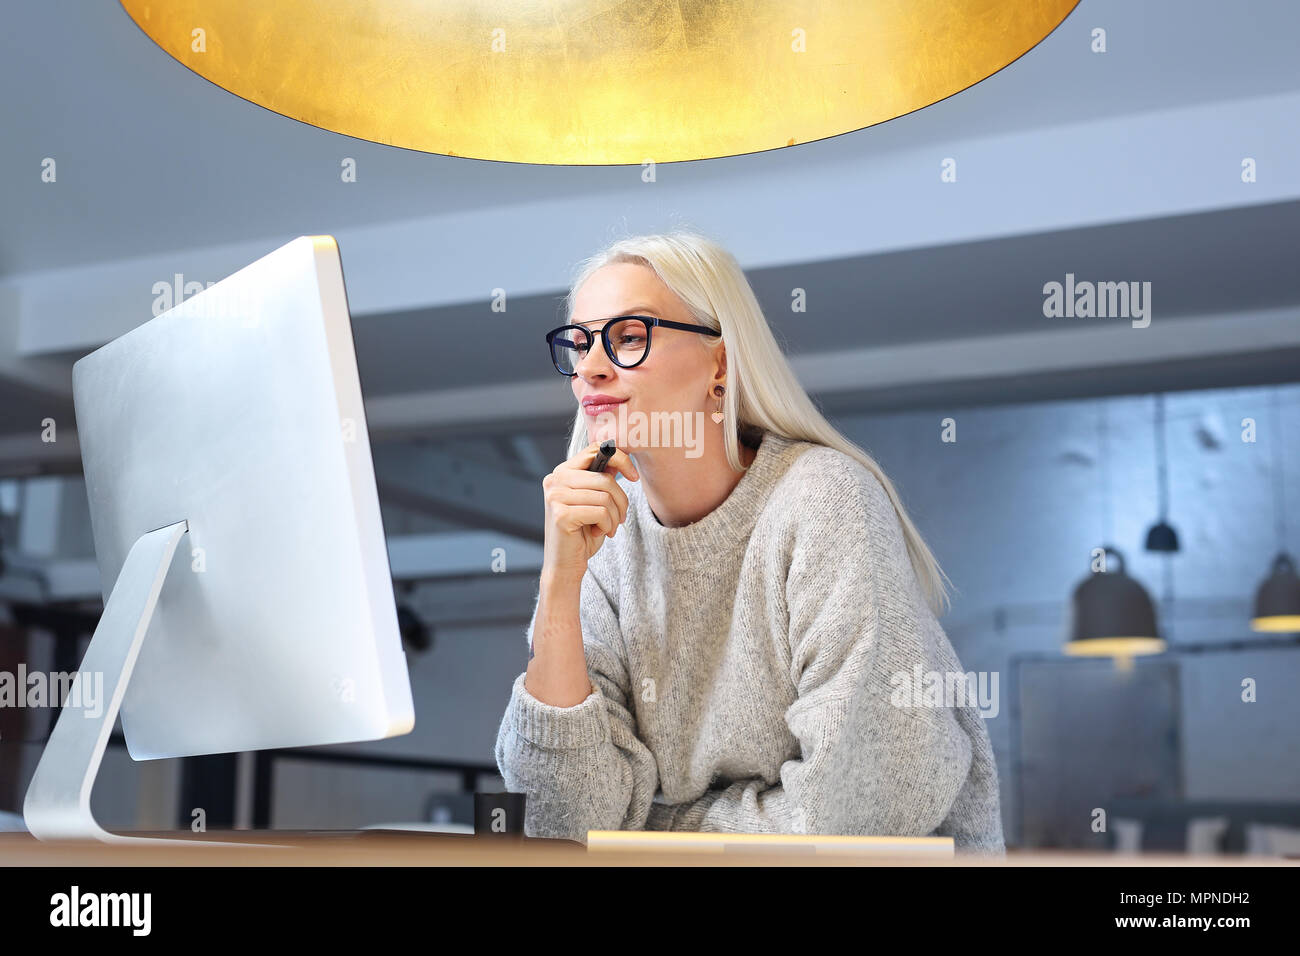 Work until late. The woman is working at the computer. - Stock Image